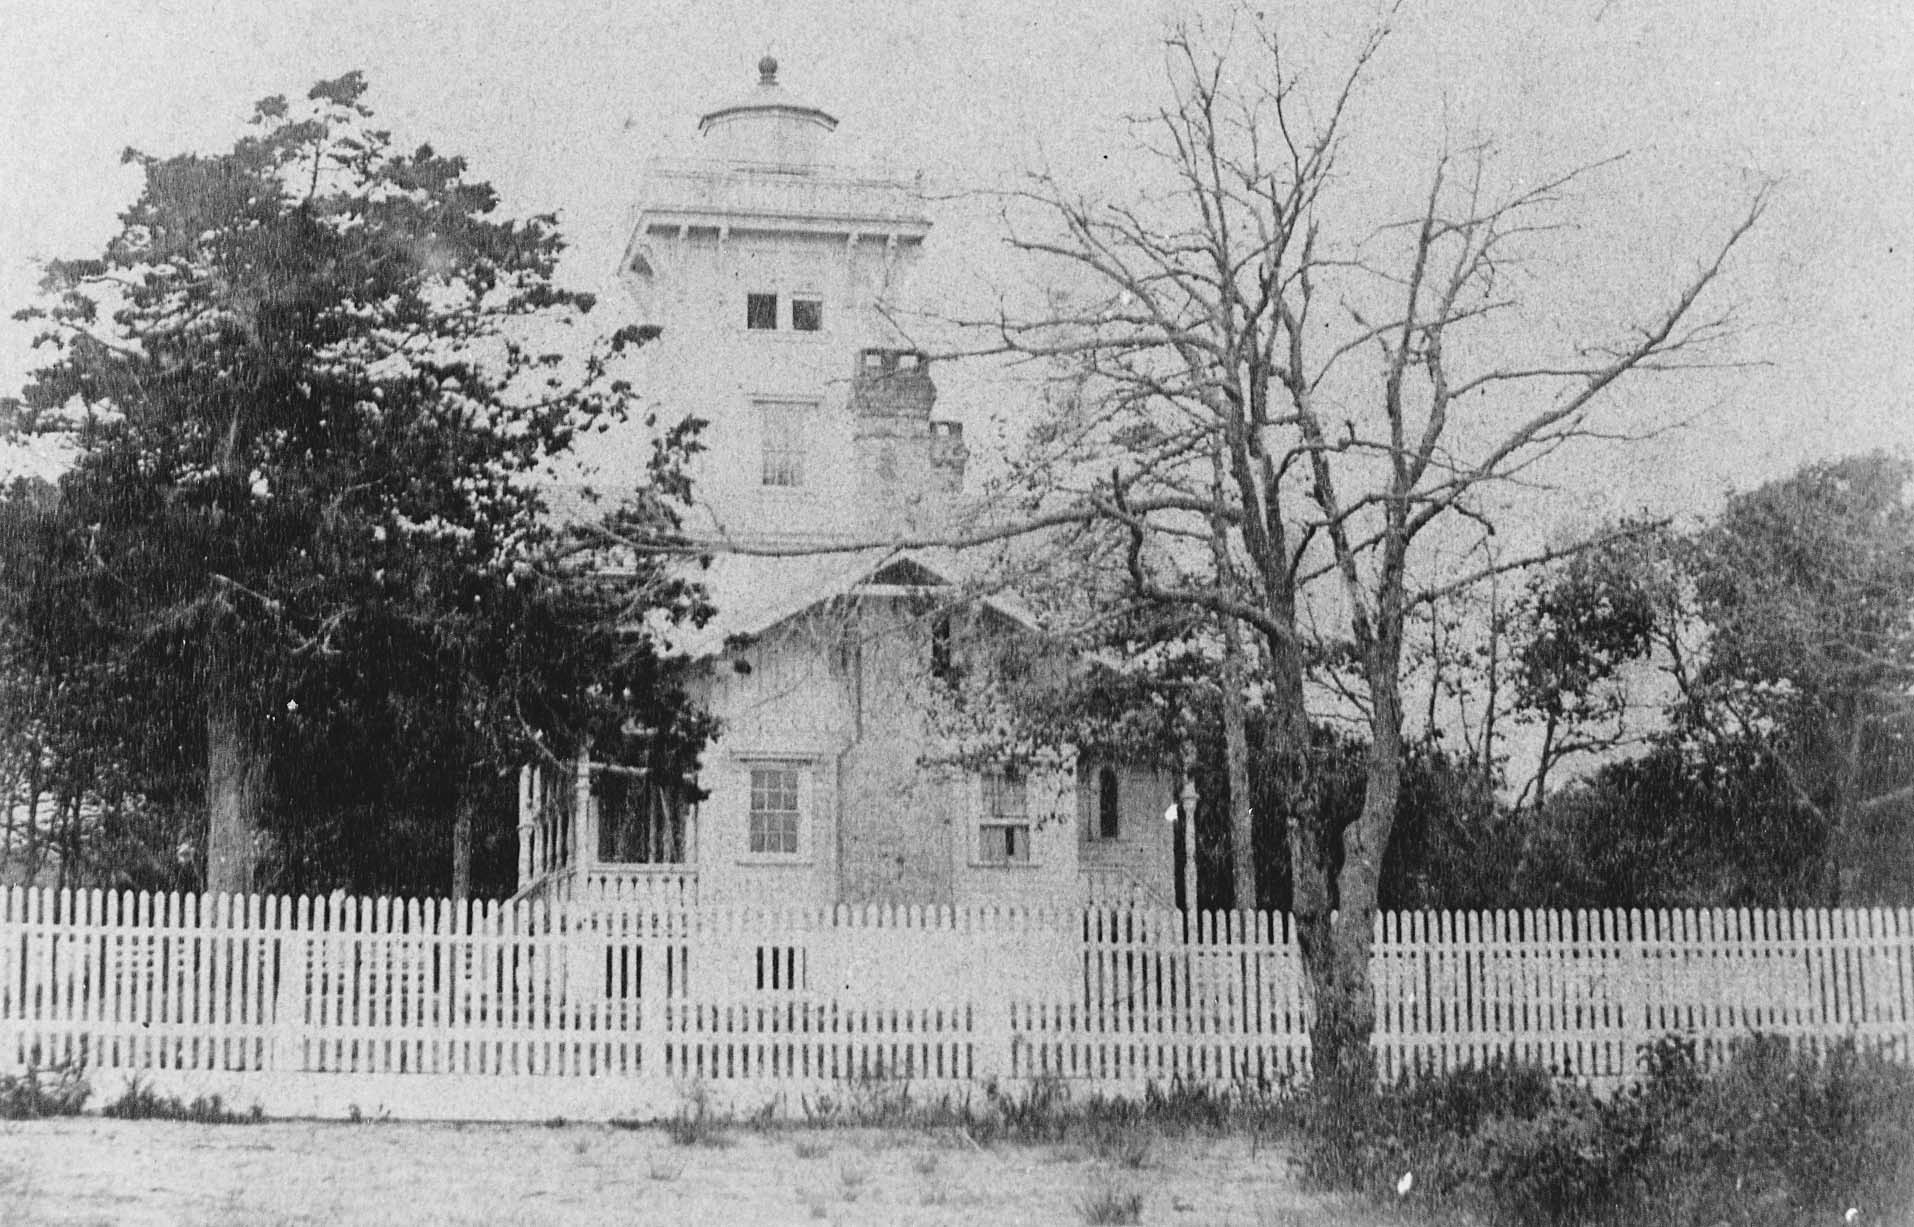 The first known photo of Hereford Inlet Lighthouse, c. 1874